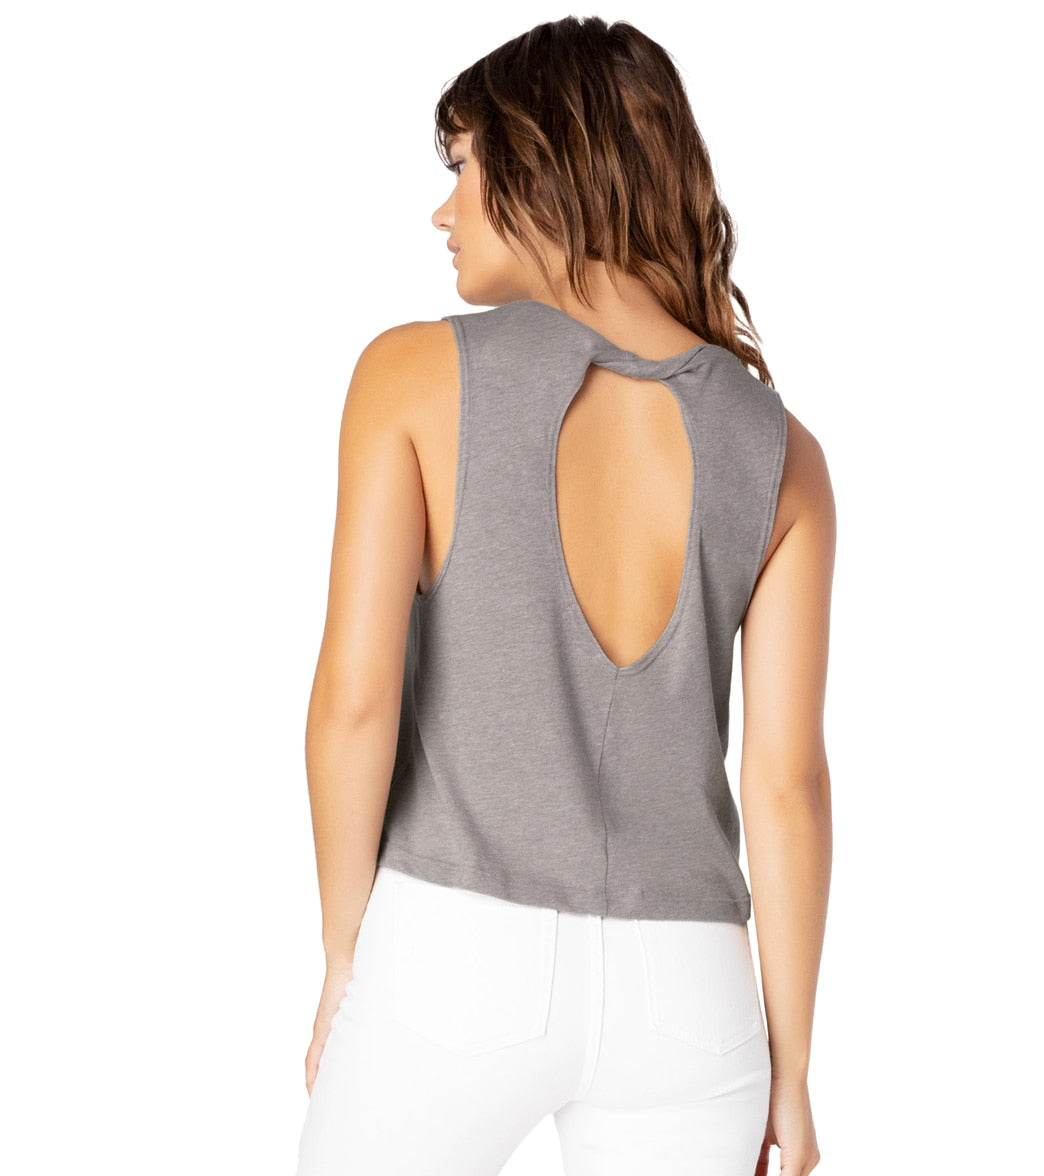 Look back at it in the Beyond Yoga Boyfriend Jersey Aquarius Yoga Tank. This tank features a trendy, twisted back detail. FeaturesYoga tank. Solid. Twisted back detail. Relaxed fit. High hip length. Lightweight. Locally sourced. DetailsFabric: 50% Cotton, 50% Polyester. Color: Aqua Mint Heather, White or Latte Heather. Style Features: Twisted back. Fit: Relaxed. Adjustable: No. Length: High hip. Care: Machine washable. Country of Origin: Made in the U.S.A. About Beyond Yoga: Beyond Yoga is a lux